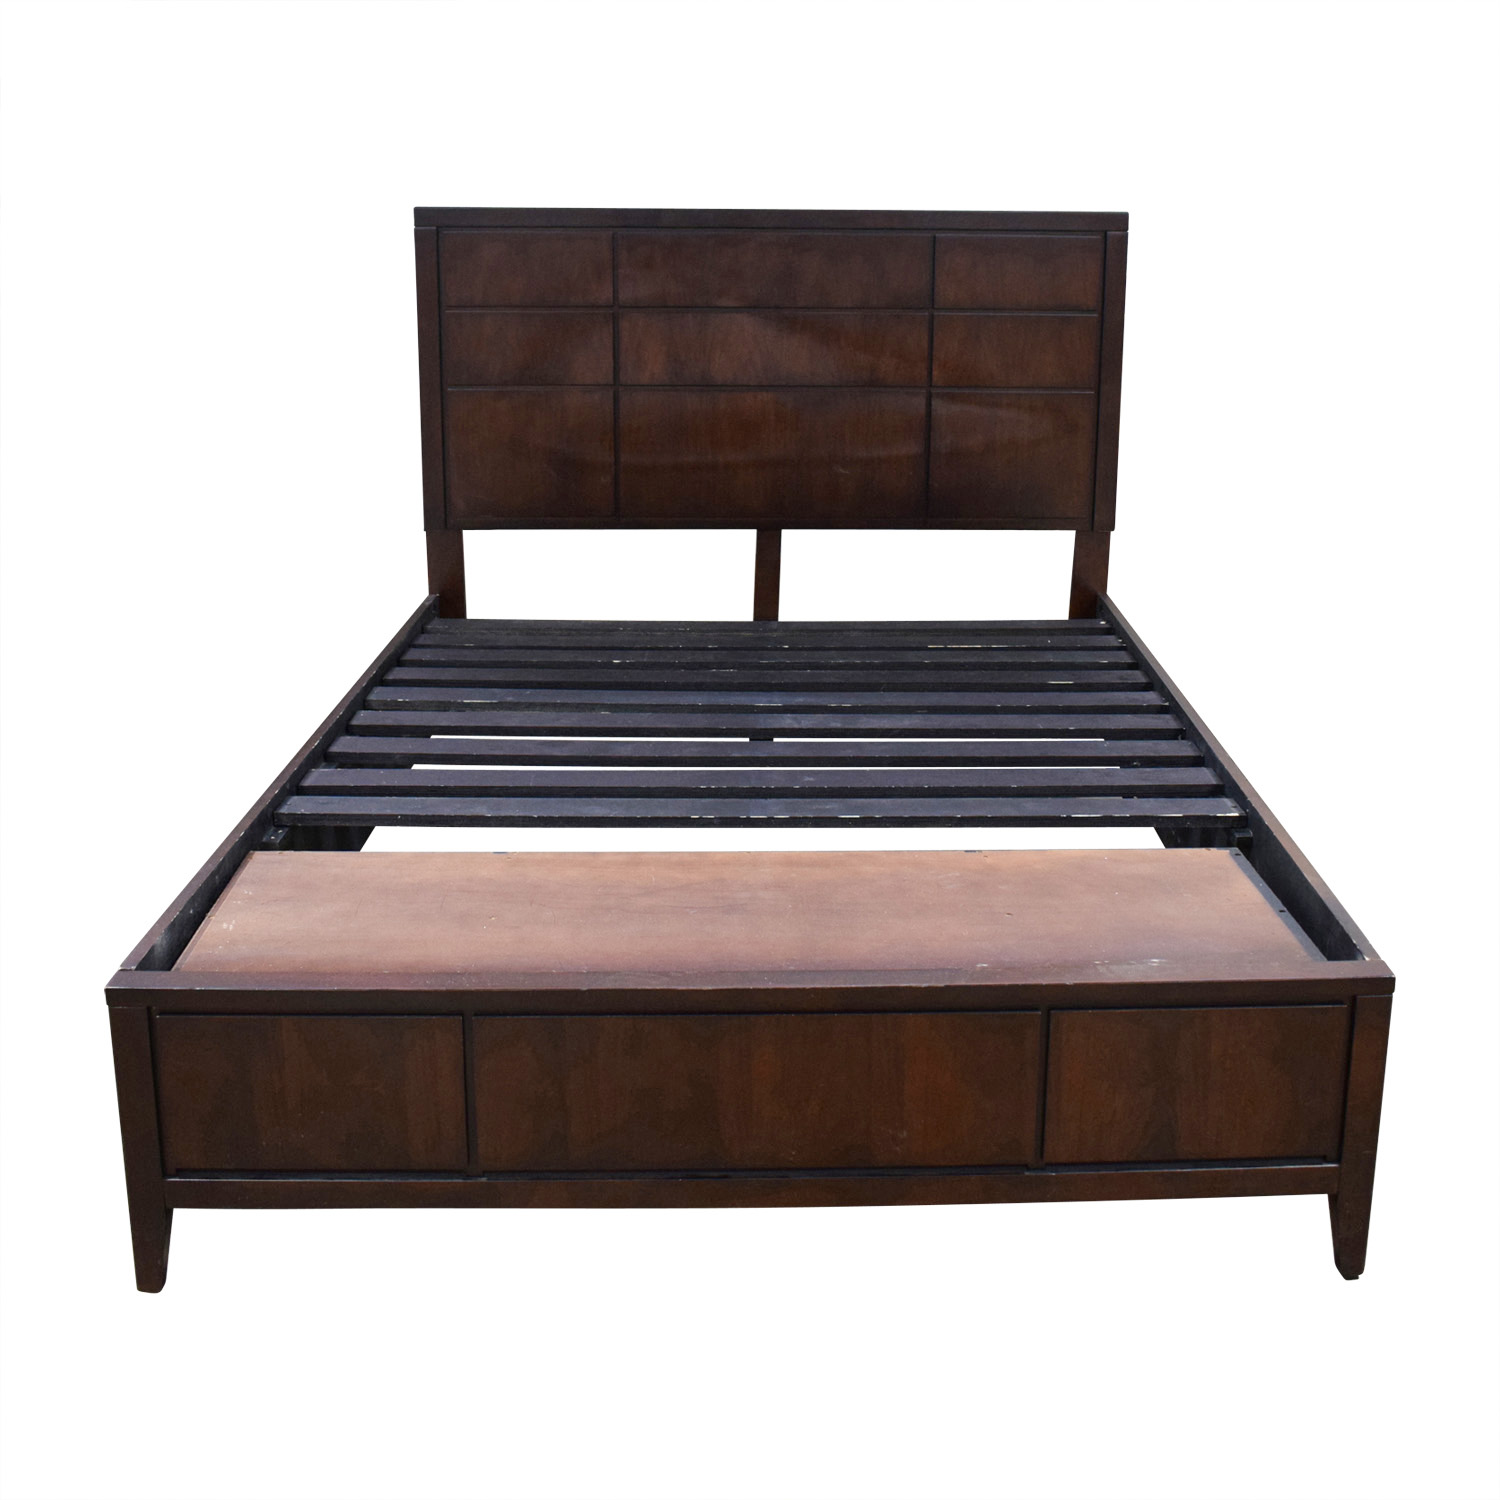 Raymour & Flanigan Raymour & Flanigan Platform Queen Size Bed Frame with Storage second hand